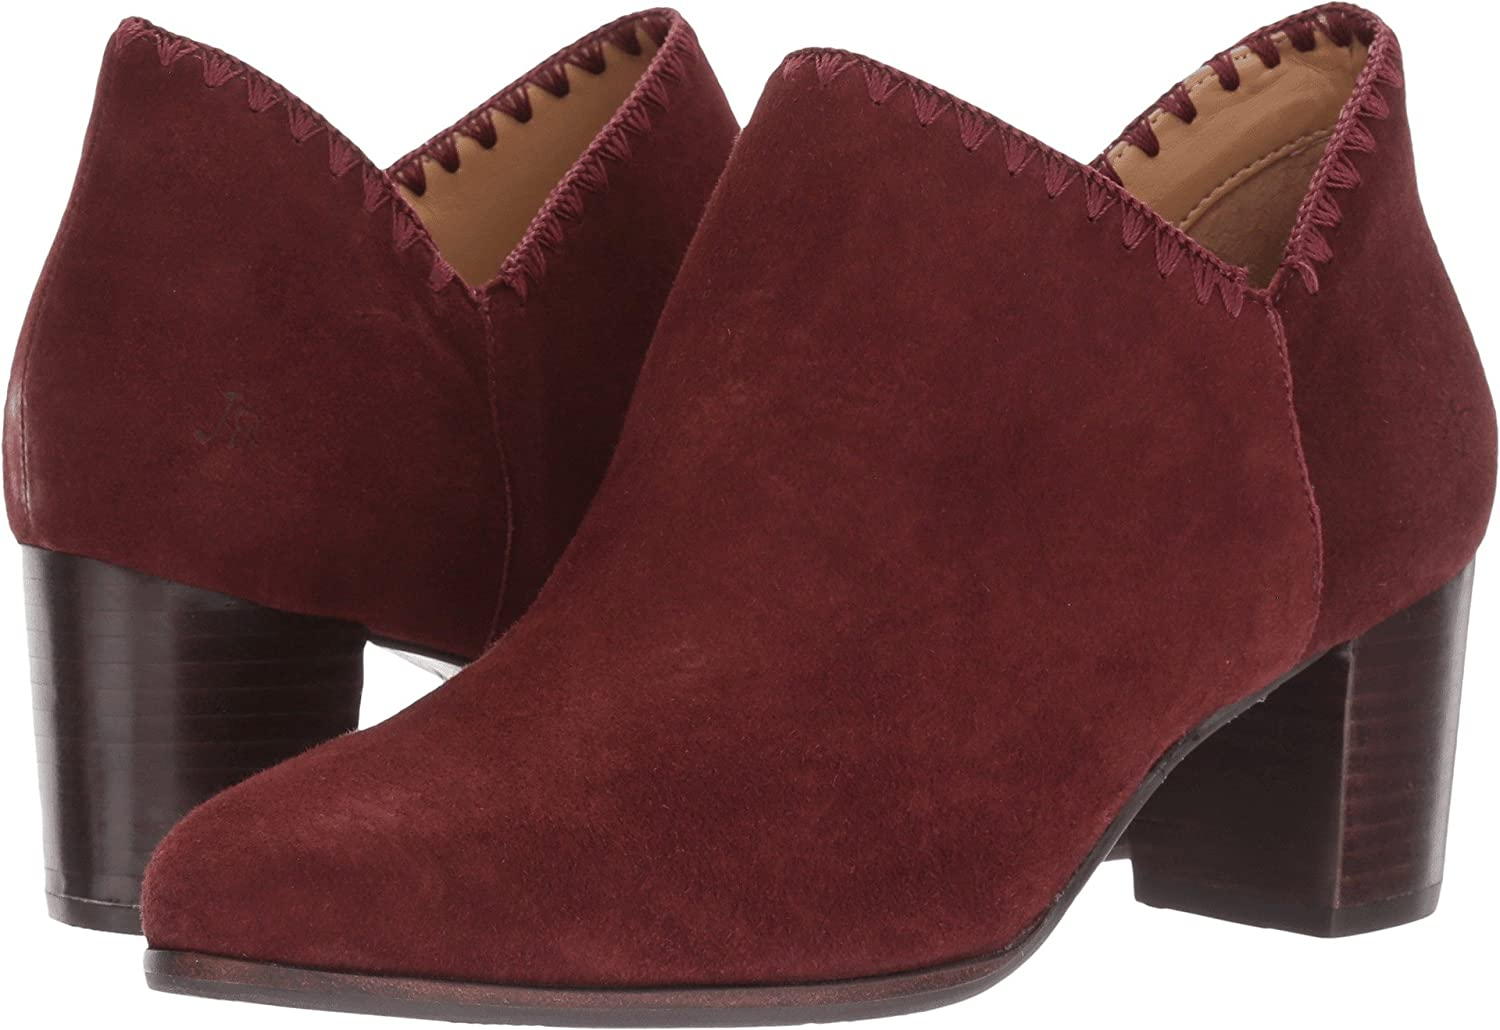 Jack Rogers Women's Marlow Ankle 8.5 Bootie B01N1V6CP7 8.5 Ankle B(M) US|Burgundy Suede fdedce